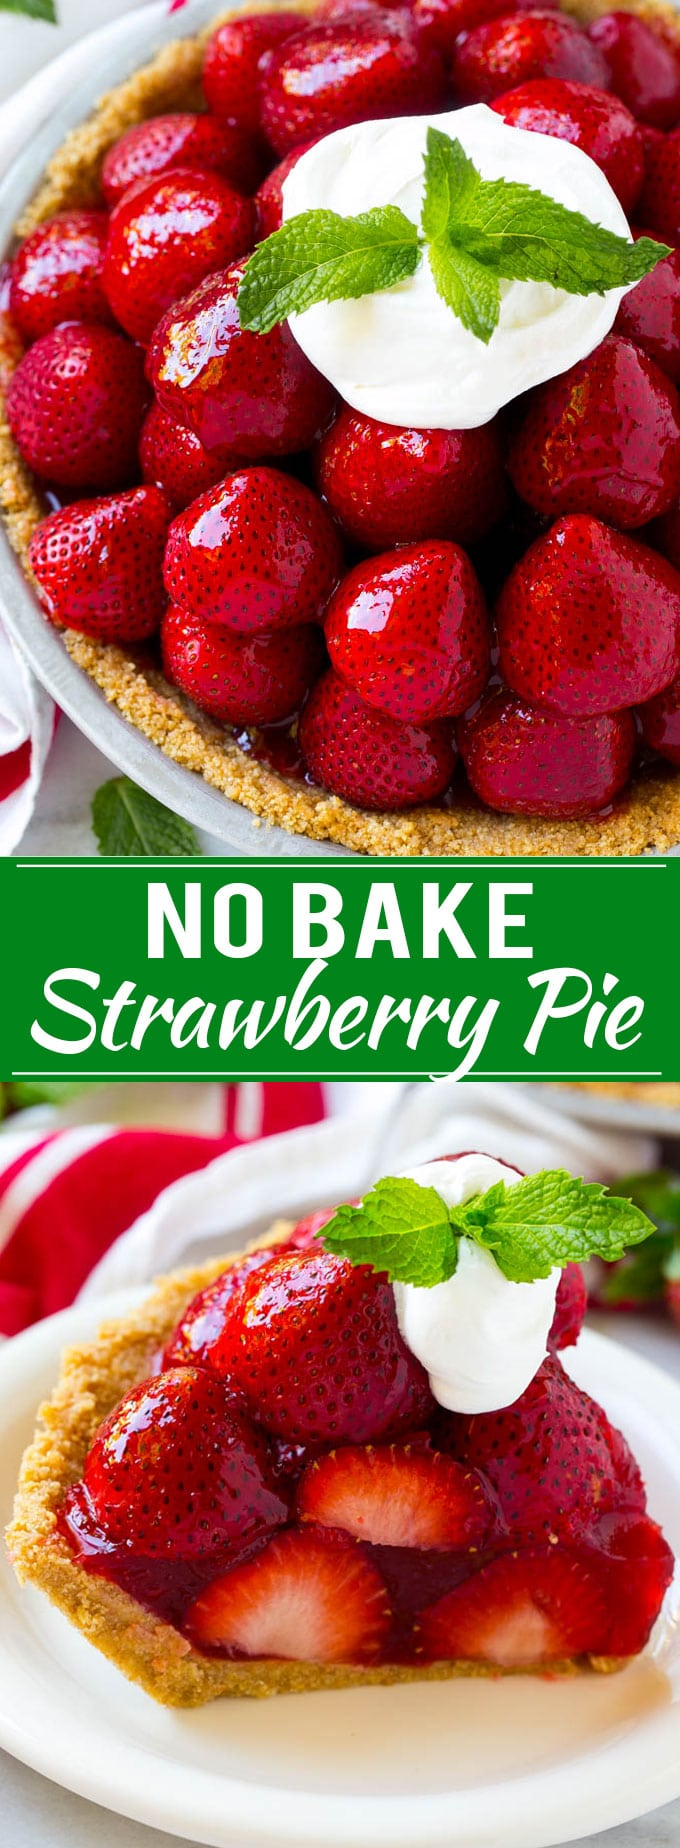 No Bake Strawberry Pie Recipe | Fresh Strawberry Pie | Strawberry Pie Recipe | No Bake Pie Recipe